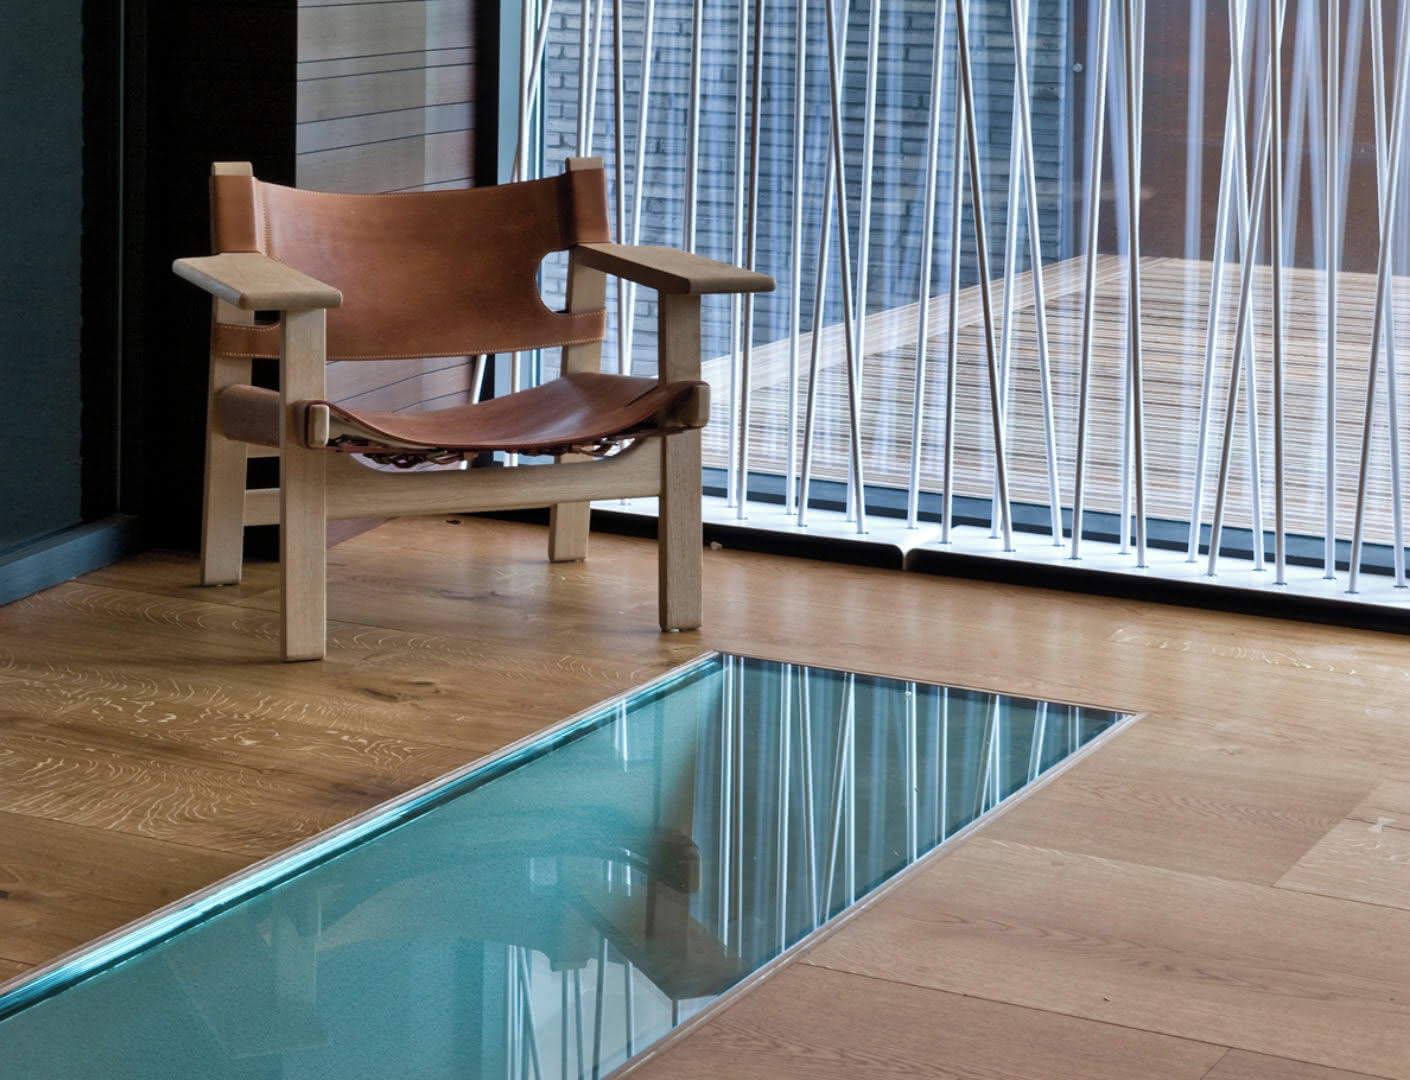 Glassfloor inserts provides transparency between the rooms.